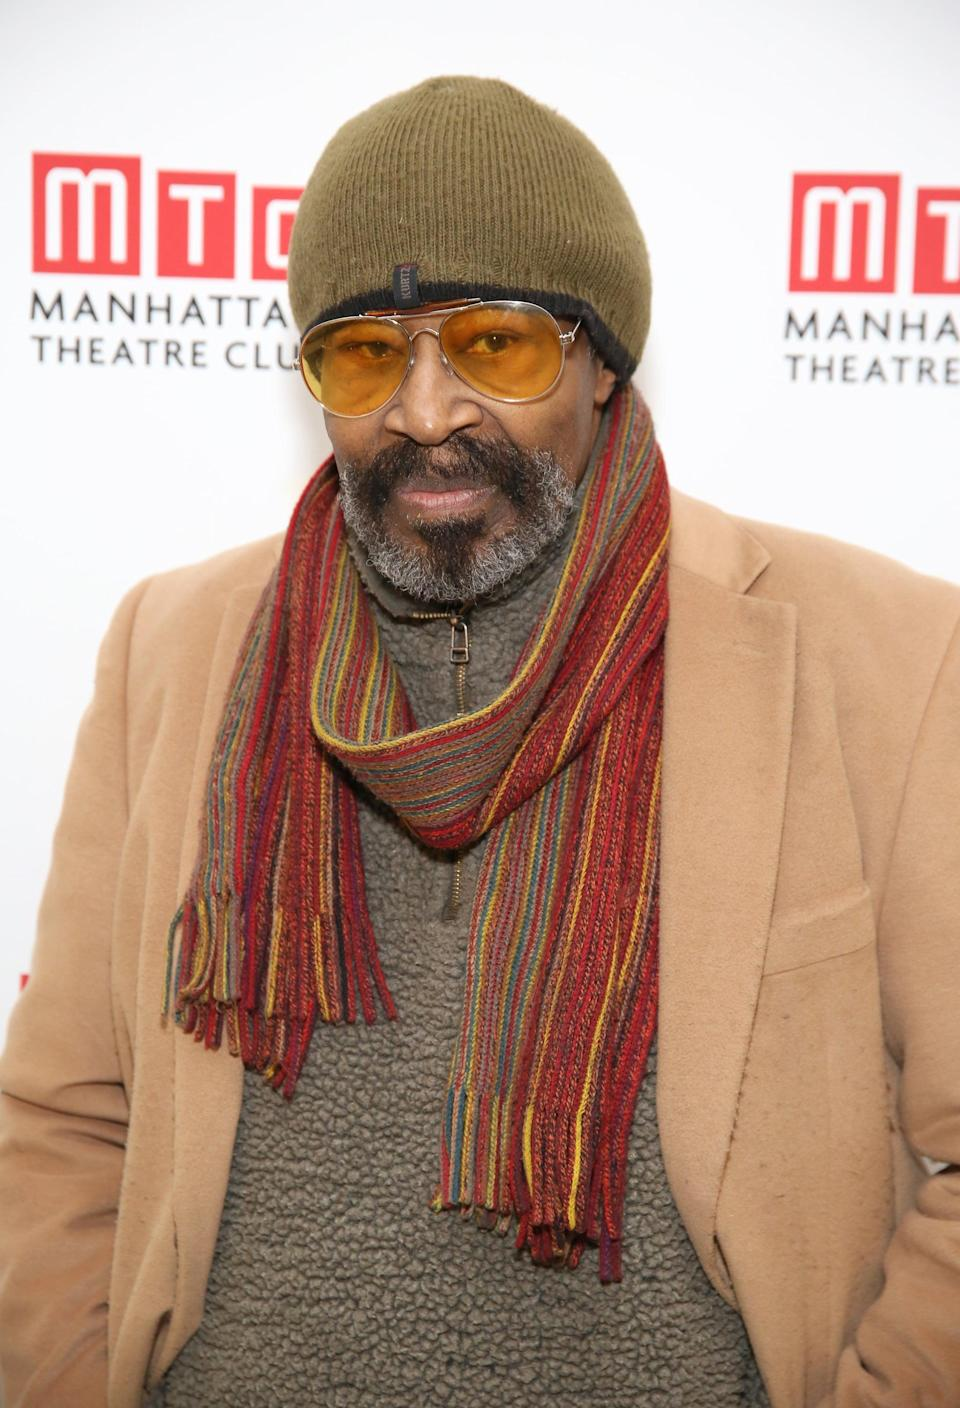 """<p>The Tony-nominated actor, who appeared in plays such as <strong>Two Trains Running</strong> and <strong>Jitney</strong>, as well as Spike Lee film <strong>Chi-Raq</strong>, <a href=""""https://www.hollywoodreporter.com/news/anthony-chisholm-tony-nominated-stage-and-screen-actor-dies-at-77"""" class=""""link rapid-noclick-resp"""" rel=""""nofollow noopener"""" target=""""_blank"""" data-ylk=""""slk:died in October"""">died in October</a>. He was 77.</p>"""